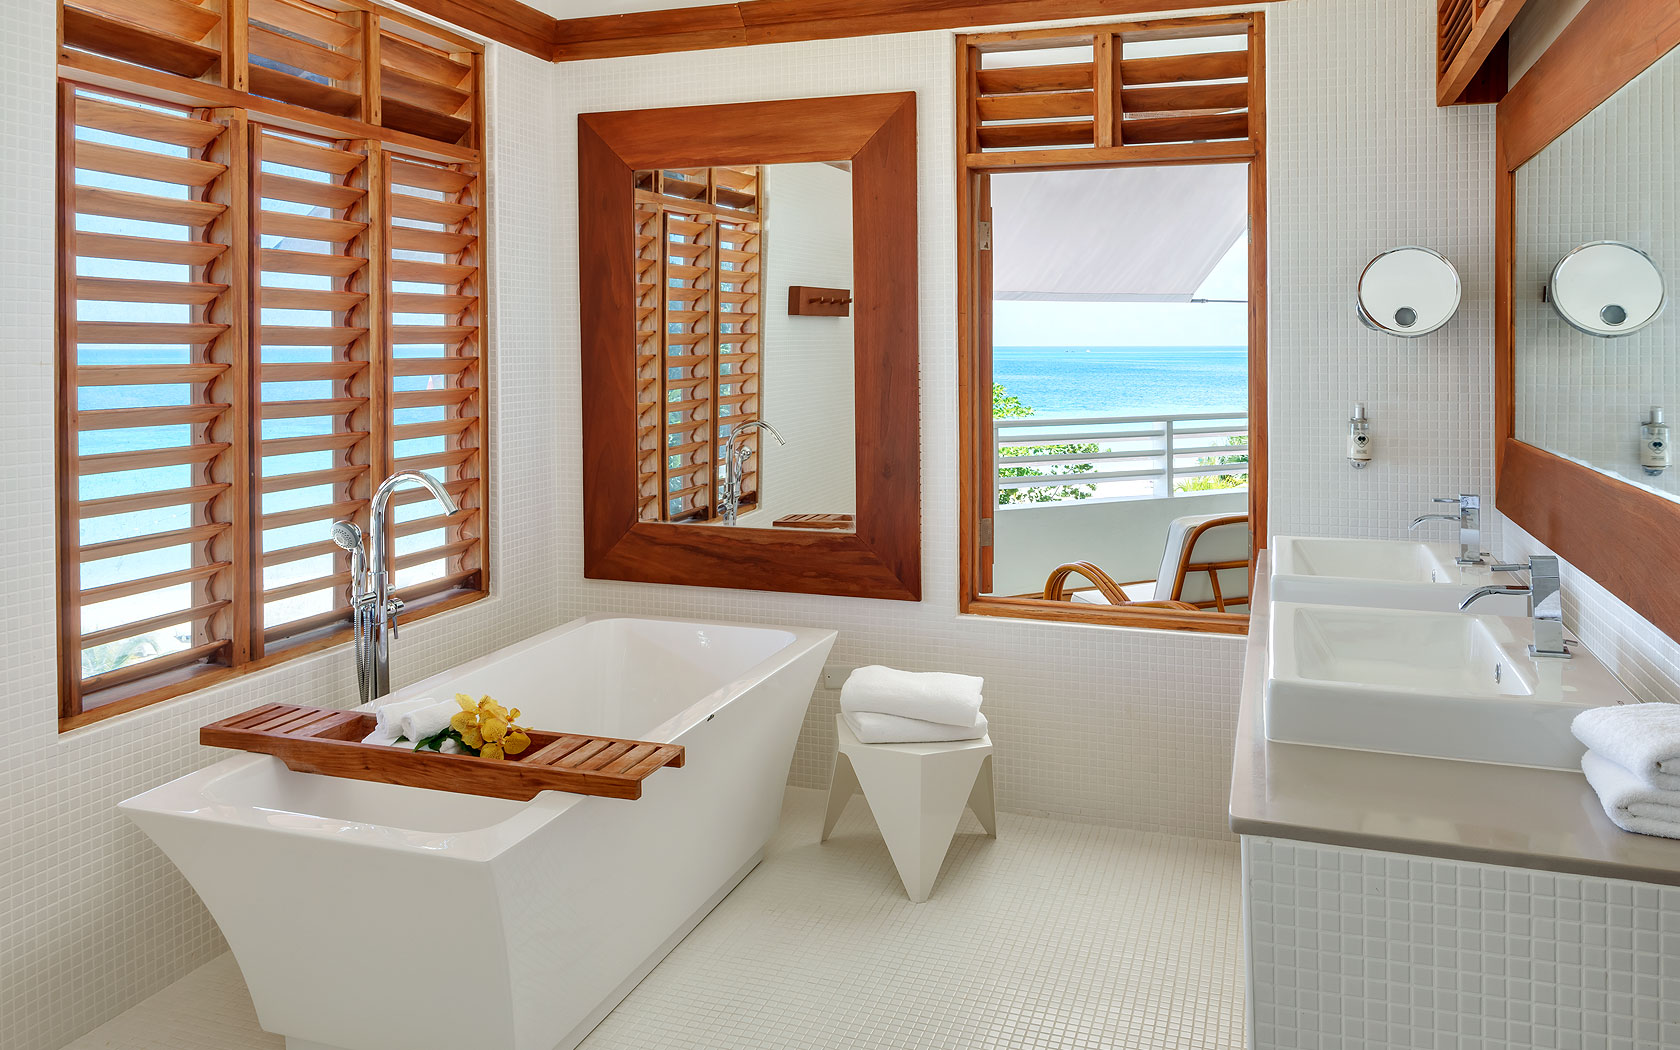 Our Great House Ocean suite bathroom